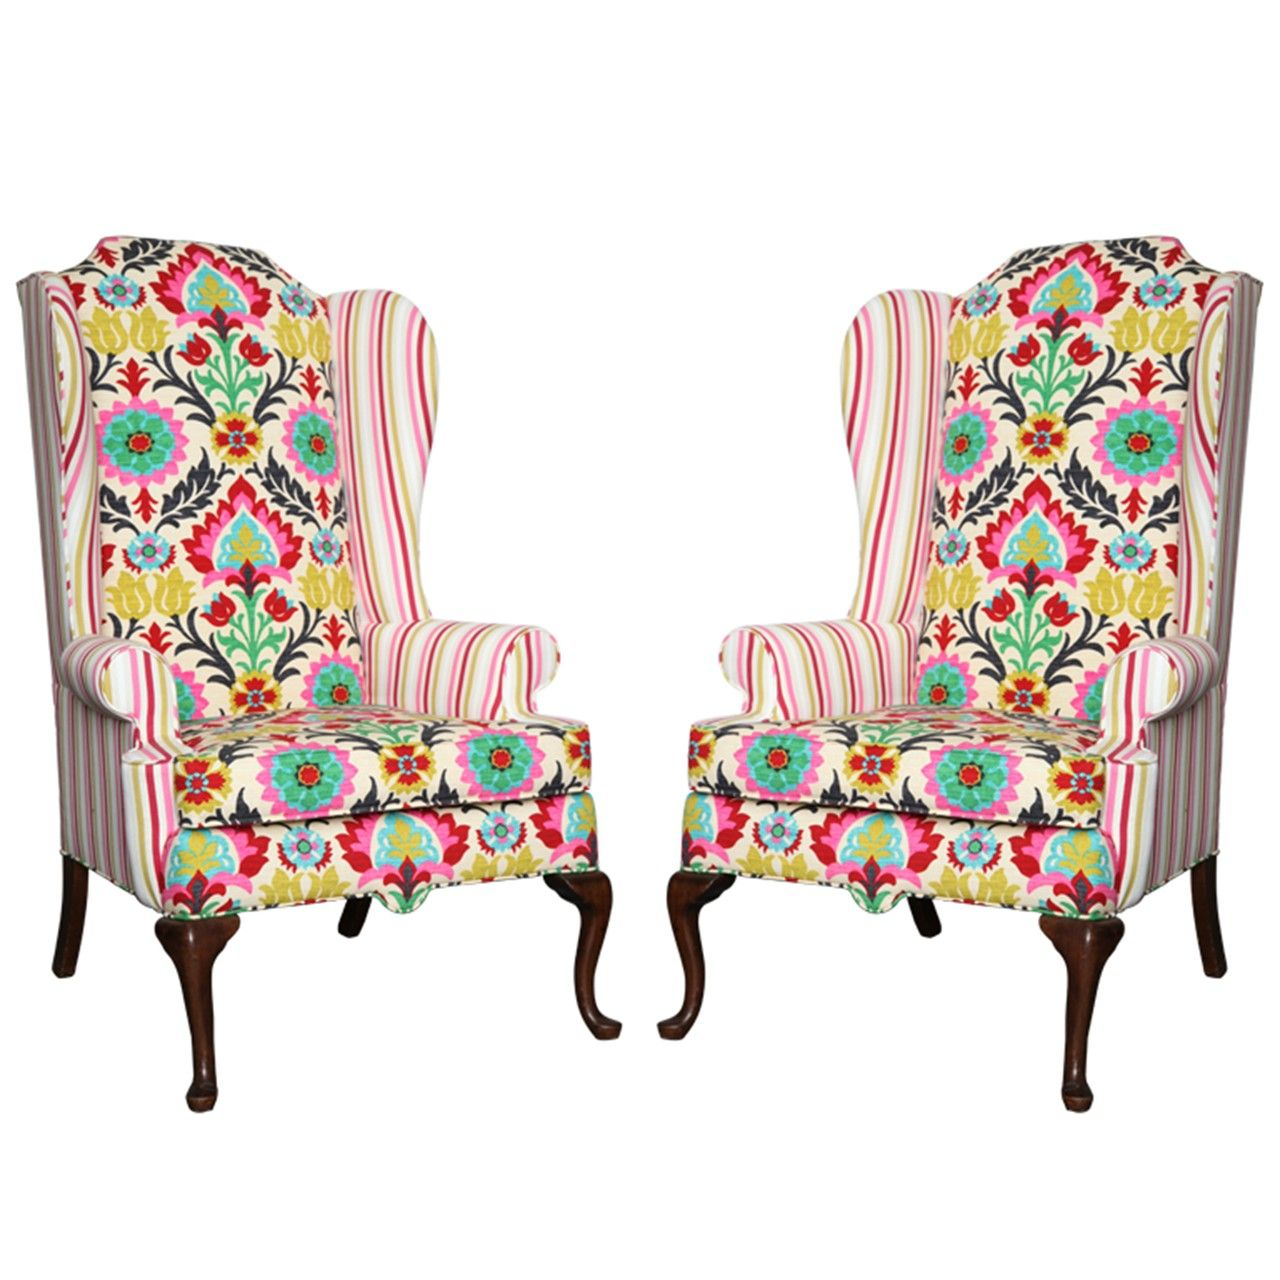 View this item and discover similar wingback chairs for sale at - A set of  two American Drexel Queen Anne Vintage Wingback Chair c. - Bright Wingback - Google Search UPHOLSTERY Pinterest Wingback